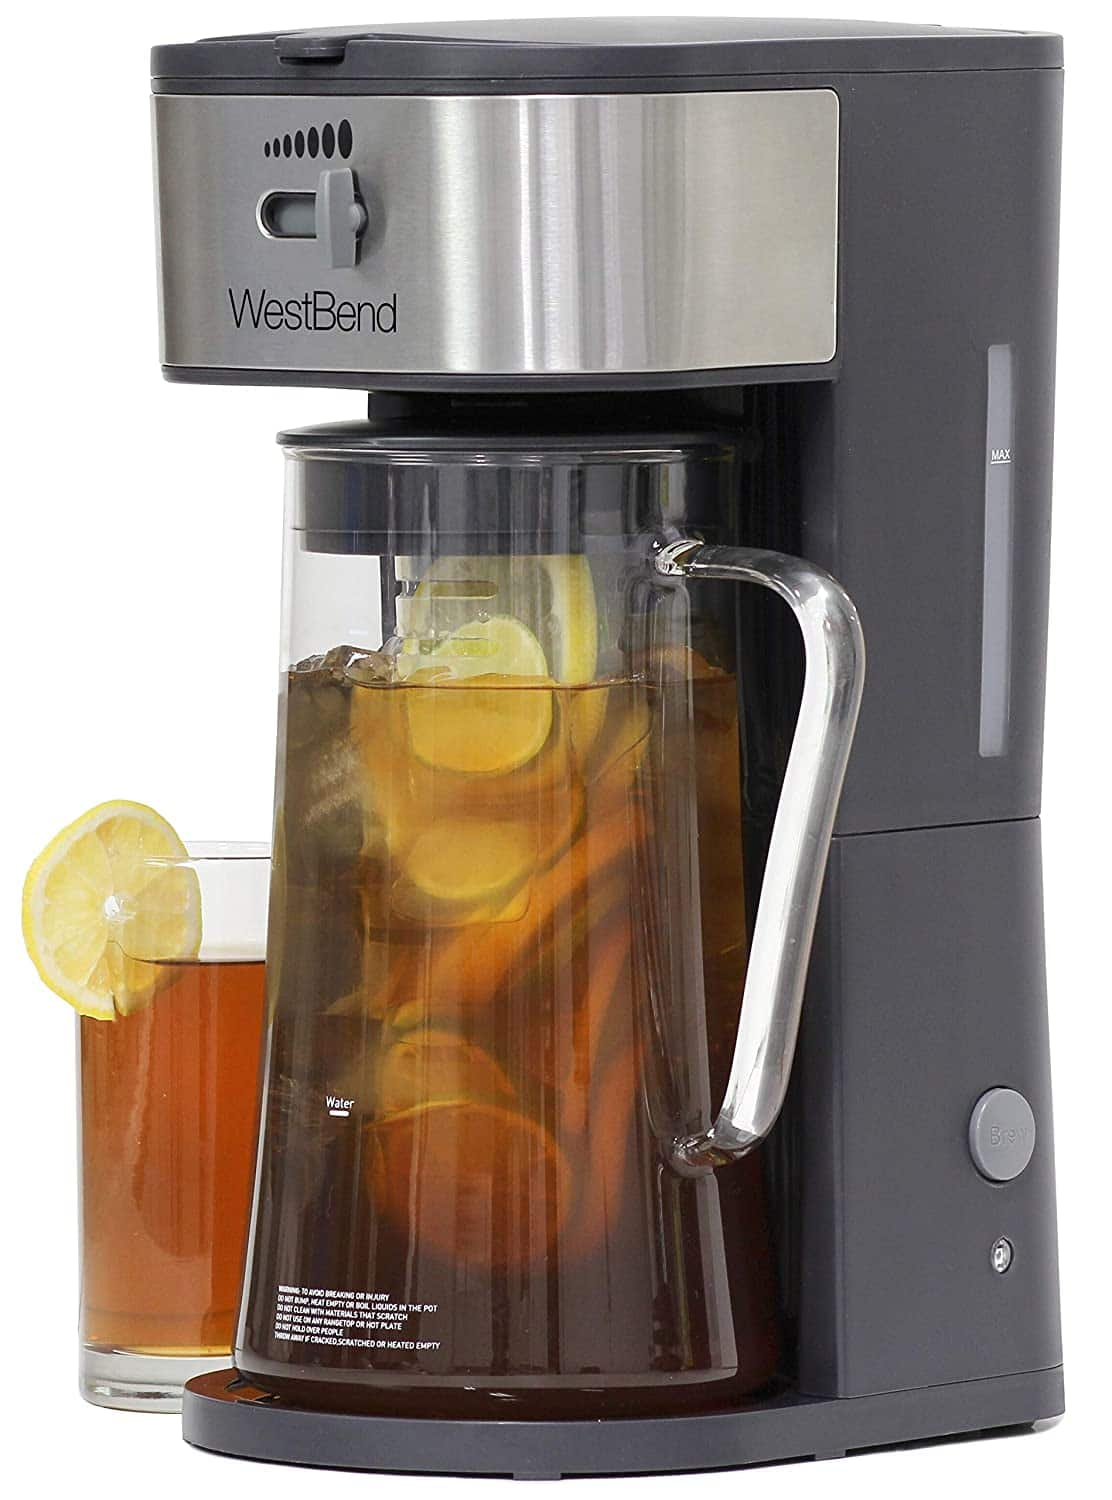 West Bend IT500 Iced Tea Maker or Iced Coffee Maker Includes an Infusion Tube to Customize the Flavor and Features Auto Shut-Off, 2.75 Quart, Black $29.99